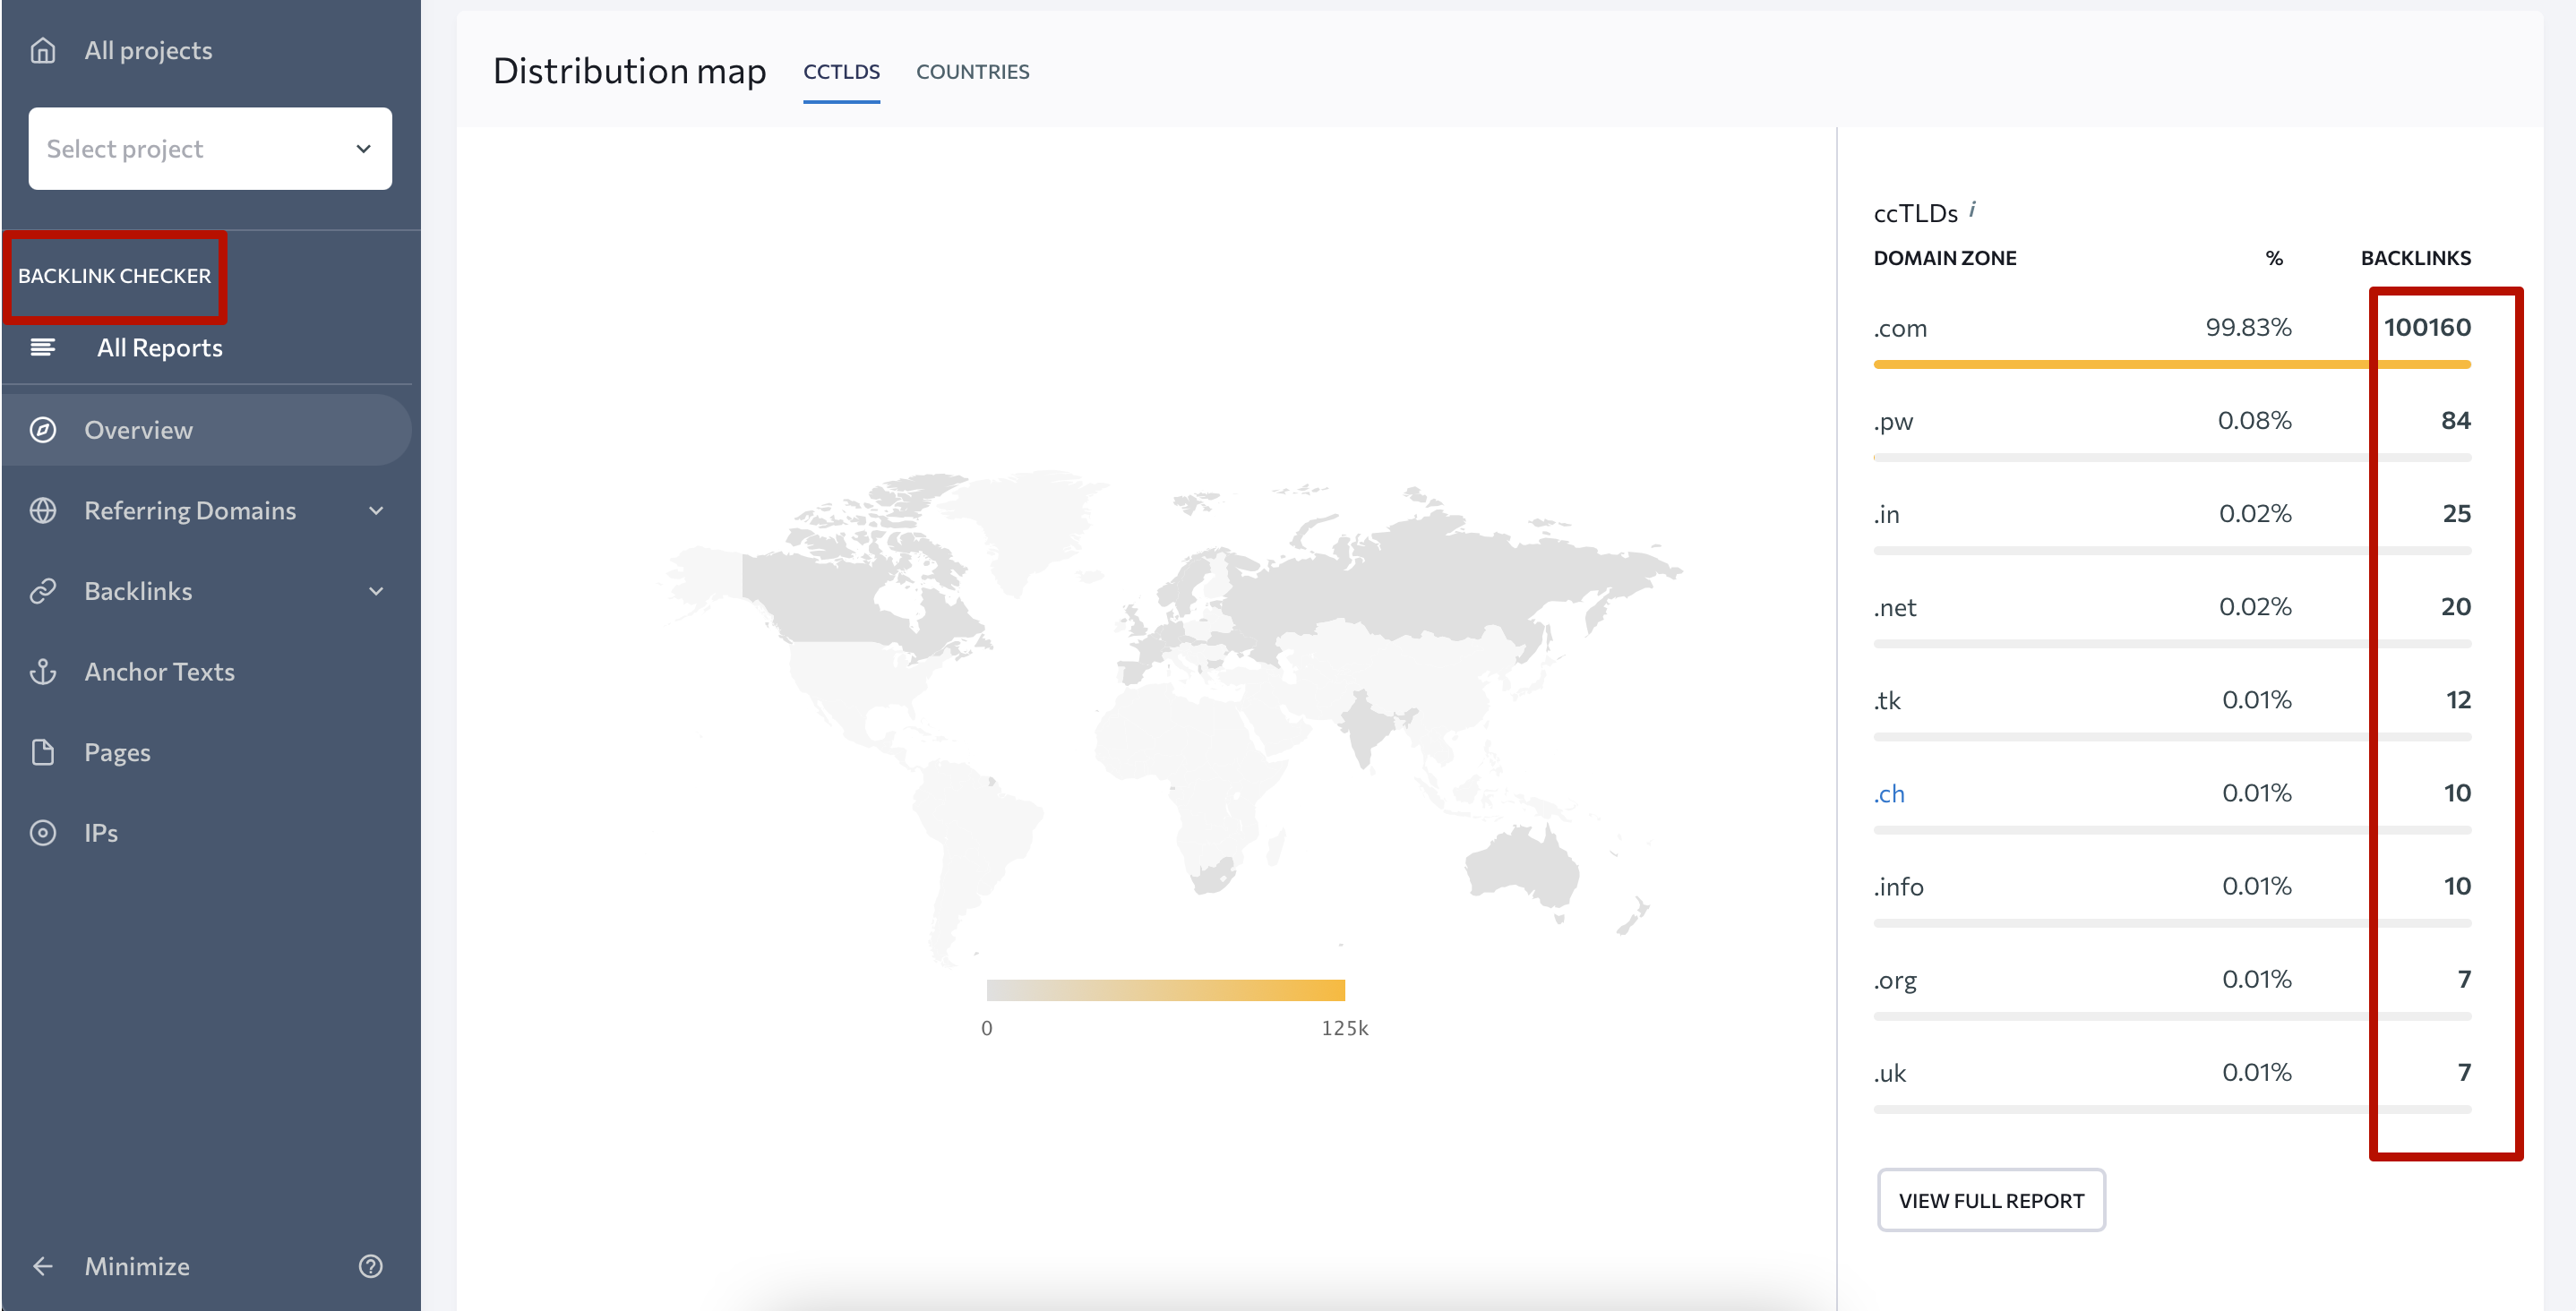 Updated distribution map in Backlink Checker